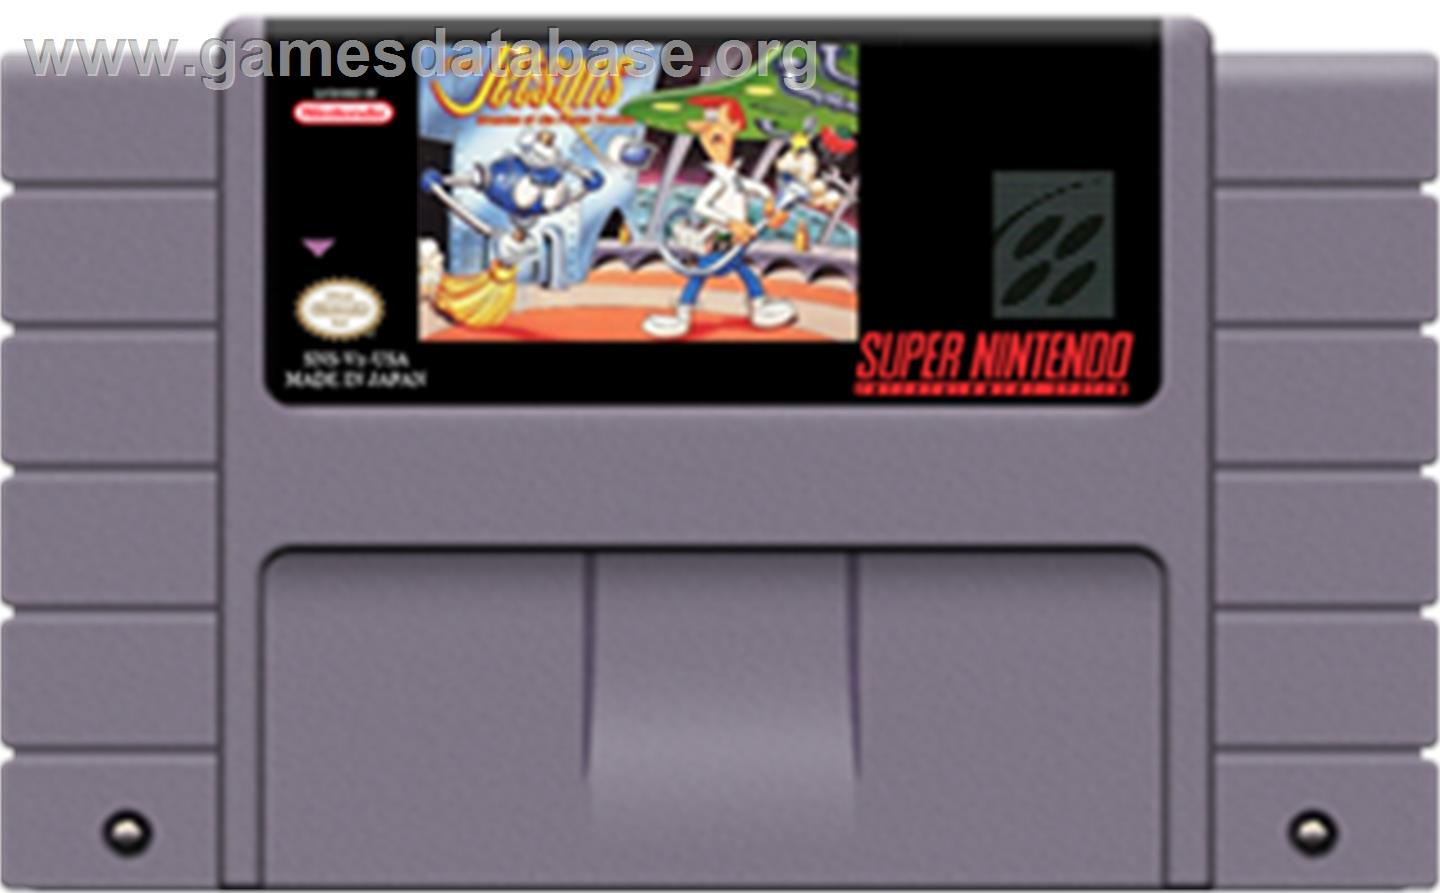 The Jetsons: Invasion of the Planet Pirates - Nintendo SNES - Artwork - Cartridge